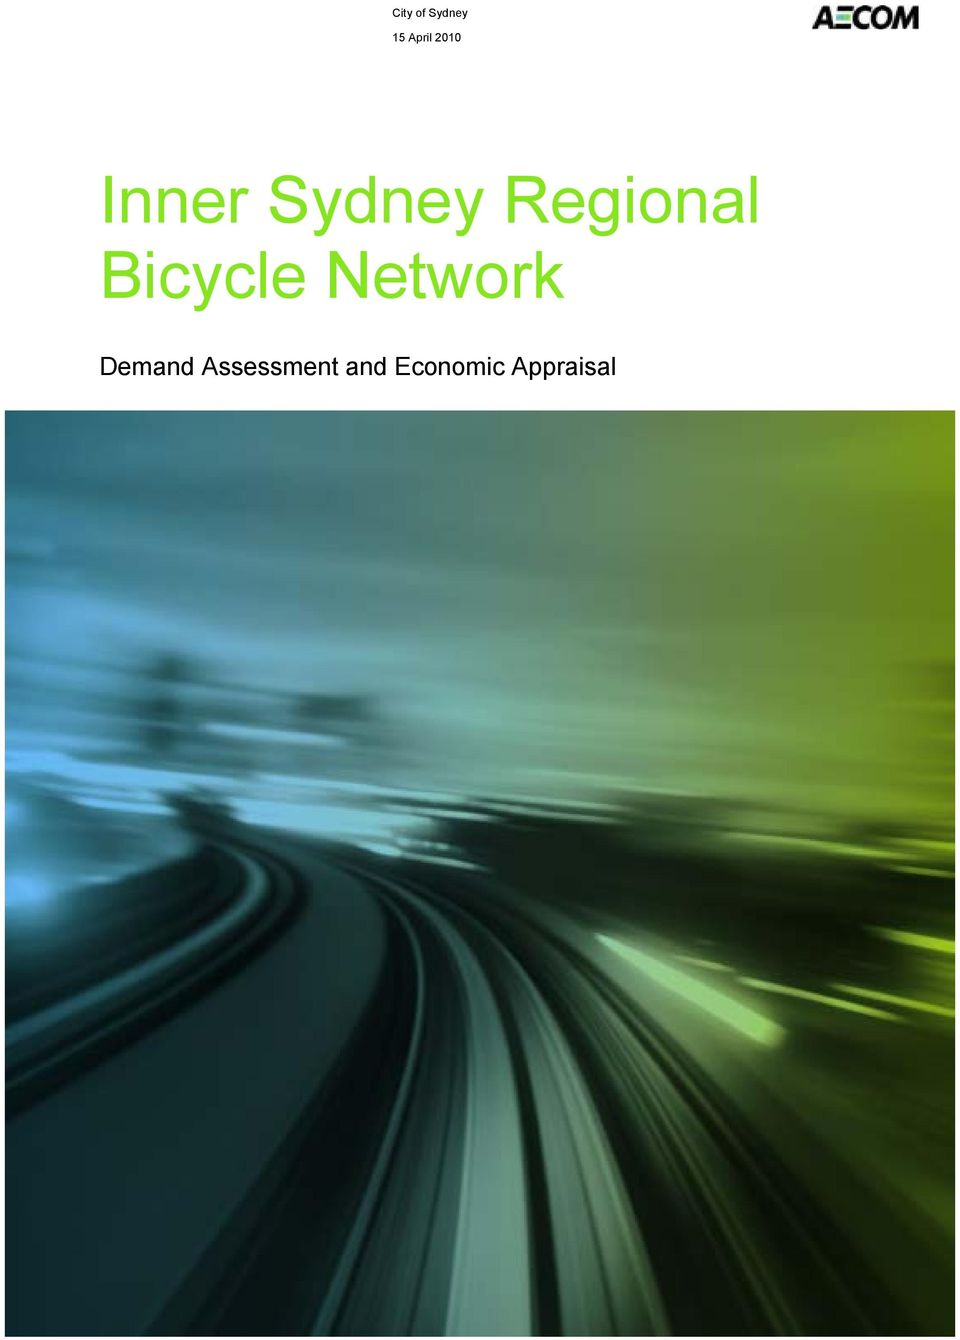 Bicycle Network Demand